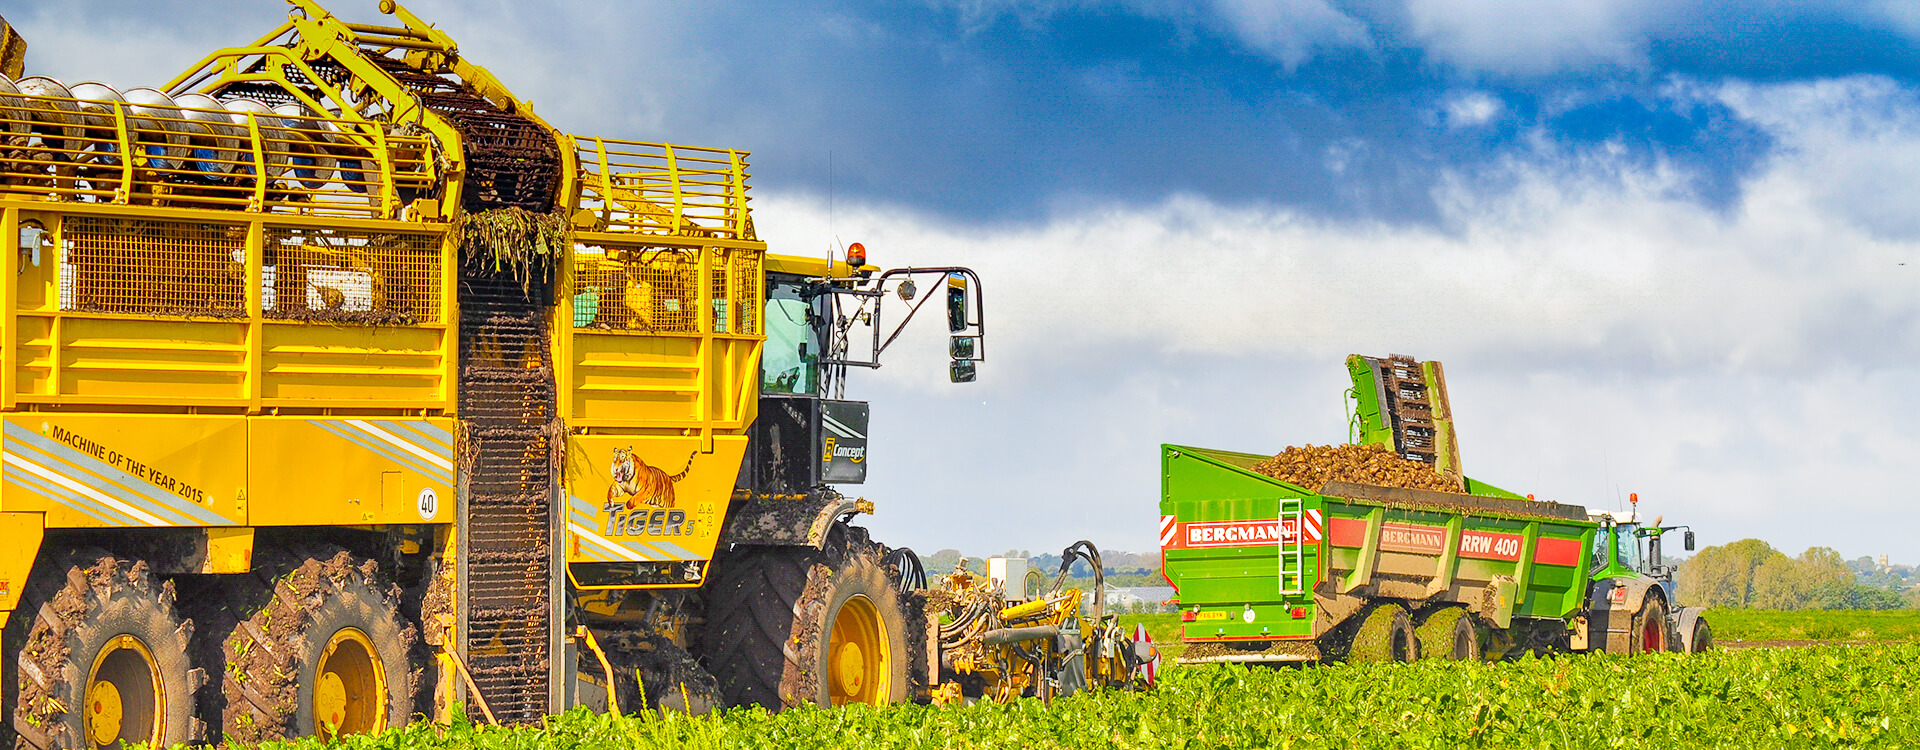 Ropa harvester and bergmann sugar beet chaser landscape harvest UK